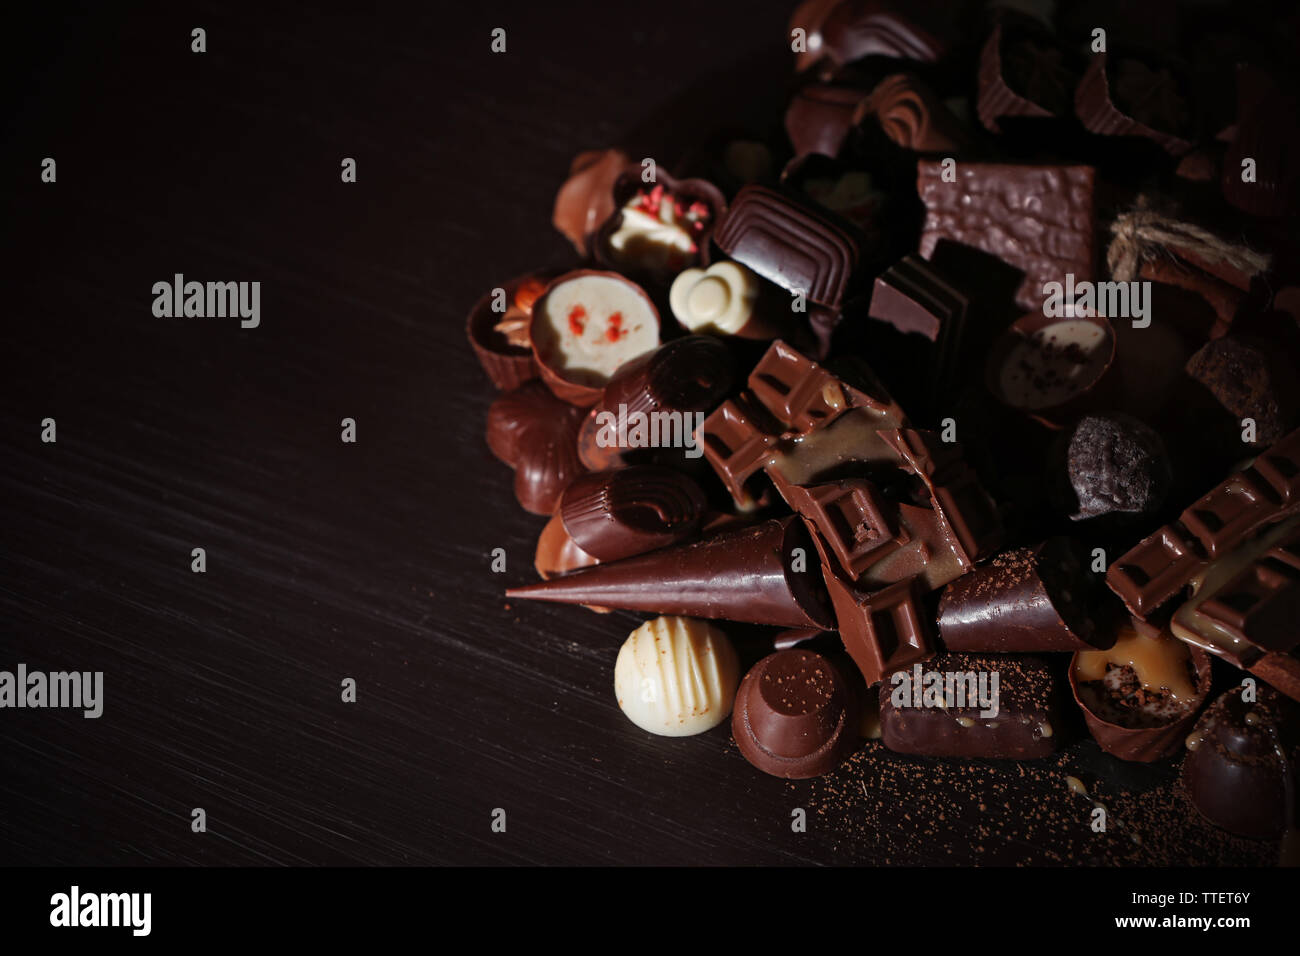 Assortment of tasty chocolate candies on wooden table background - Stock Image